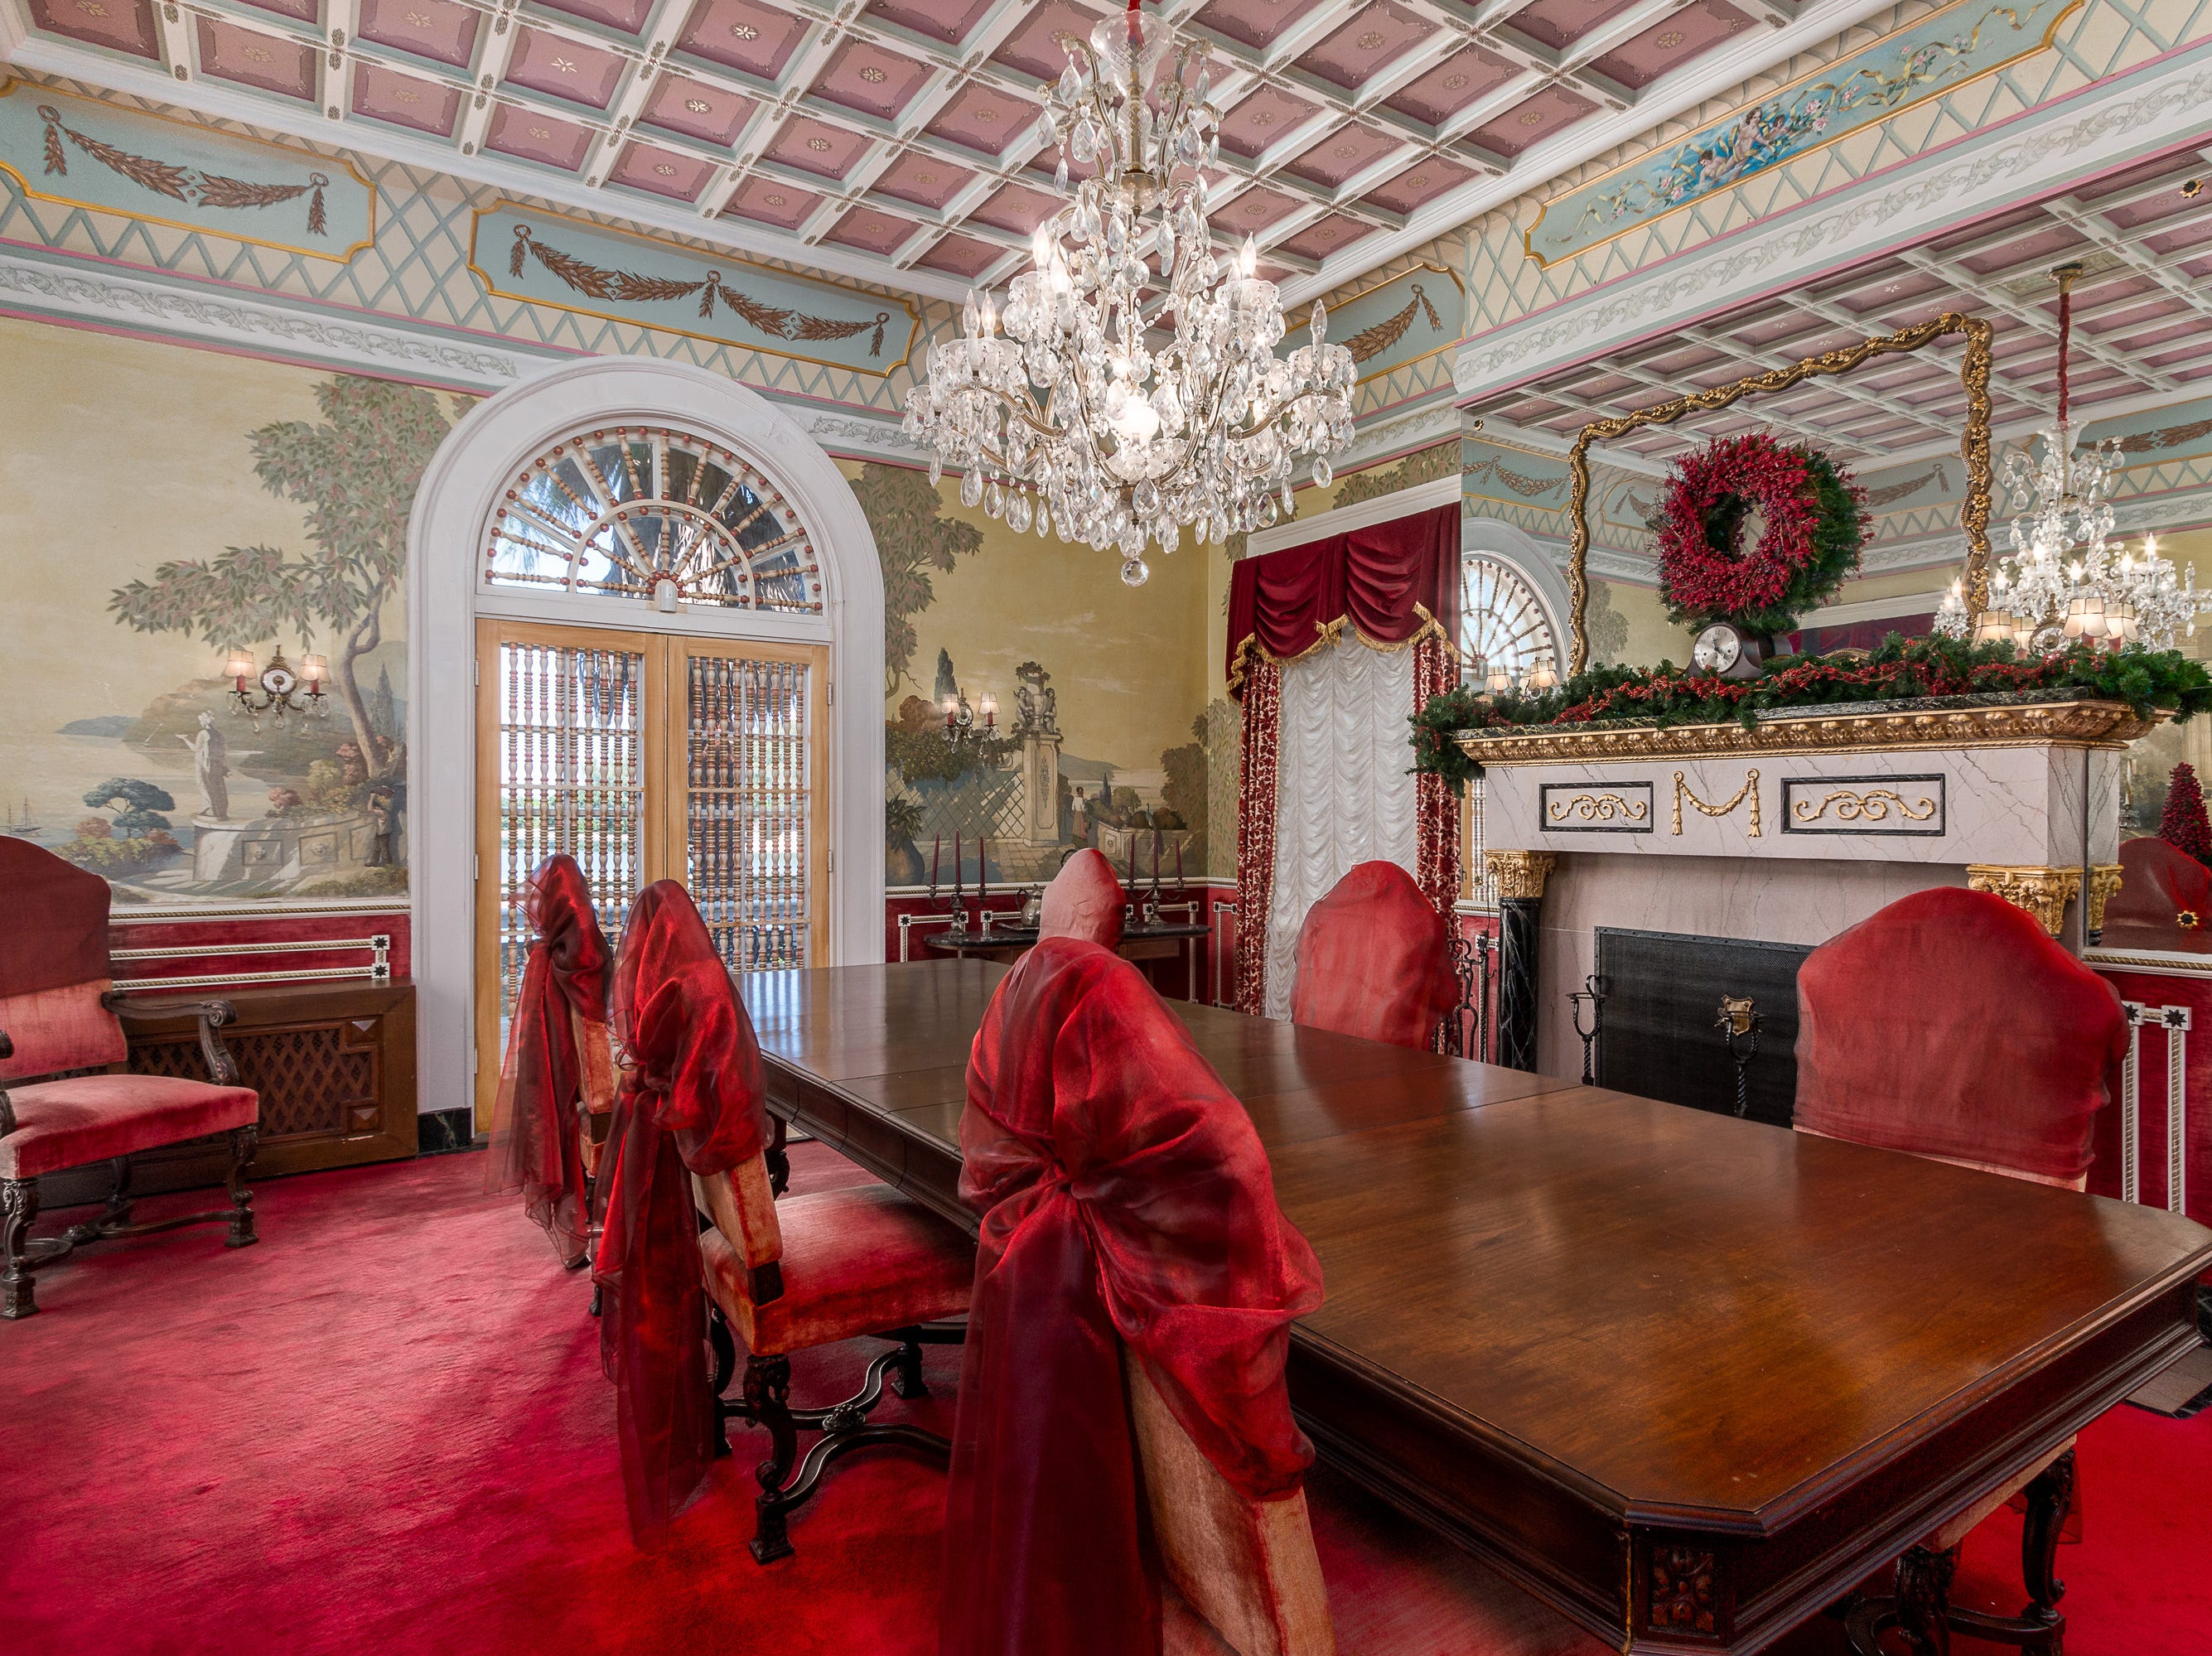 W.K. Kellogg's mansion in Dunedin, Florida, which he bought in 1934, is nearly 8,000 square feet of opulence sitting on around one acre of land.